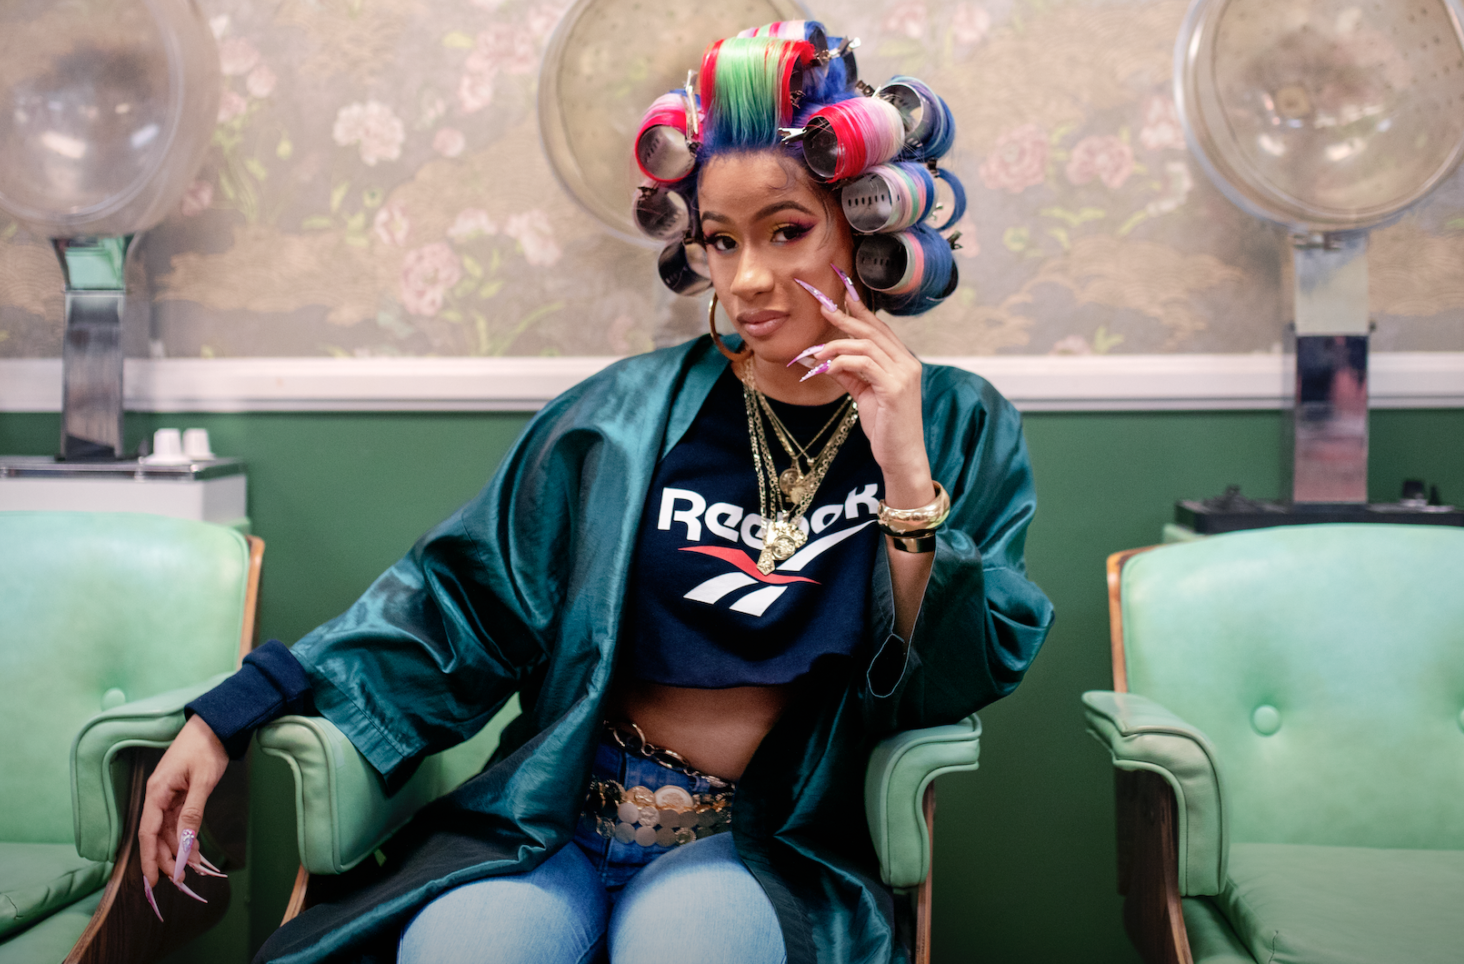 cardi-b-reebok-commercial-nails-sport-the-unexpected-campaign-campaign-july-2019-sneakers-salon